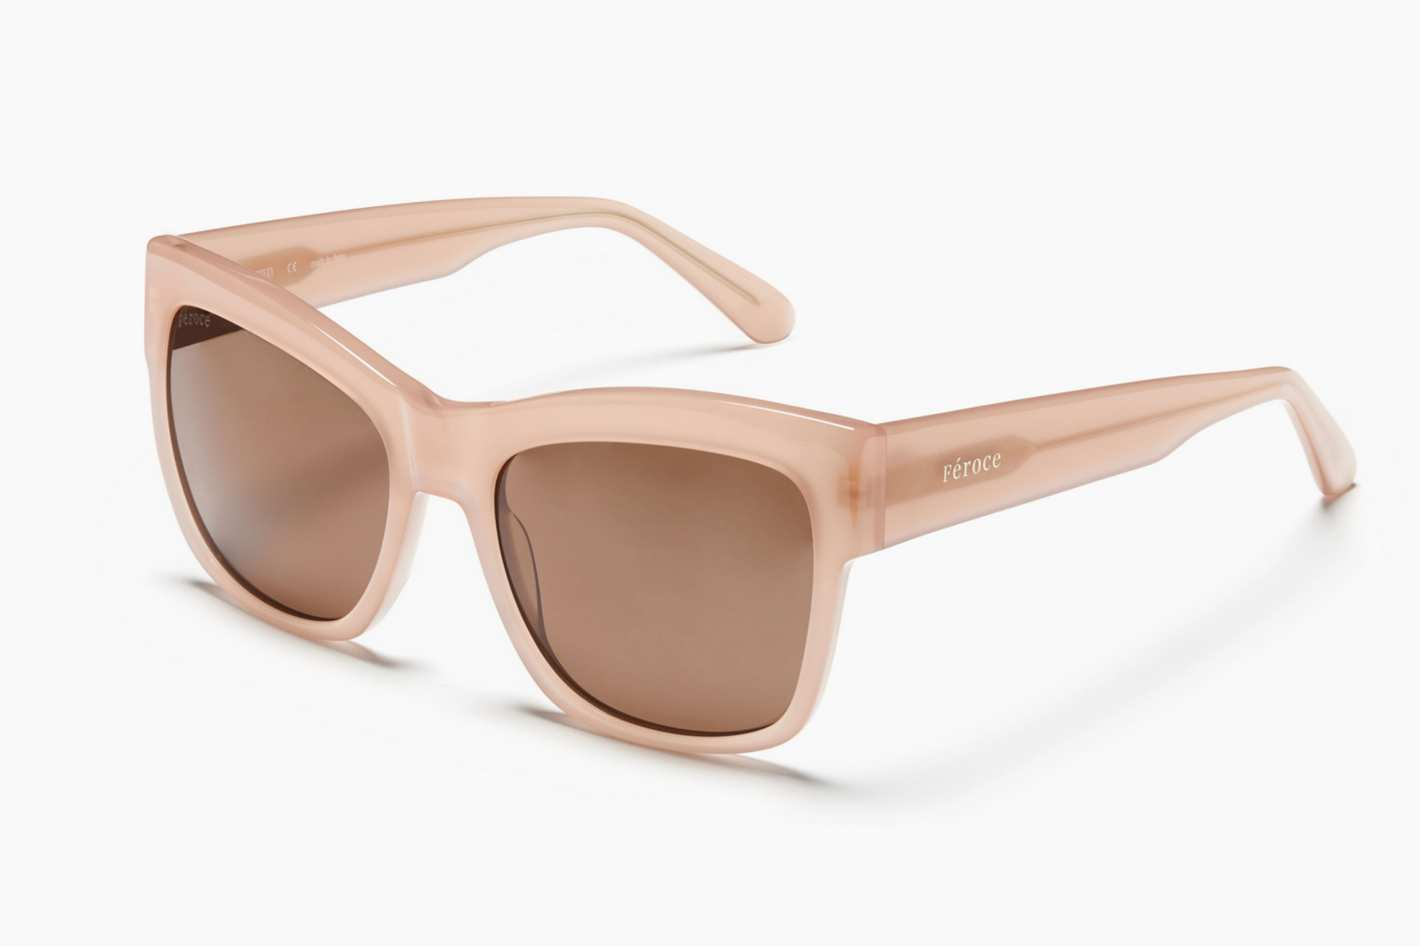 c7ef26a31155 Shop All of Féroce's First Sunglasses Collection